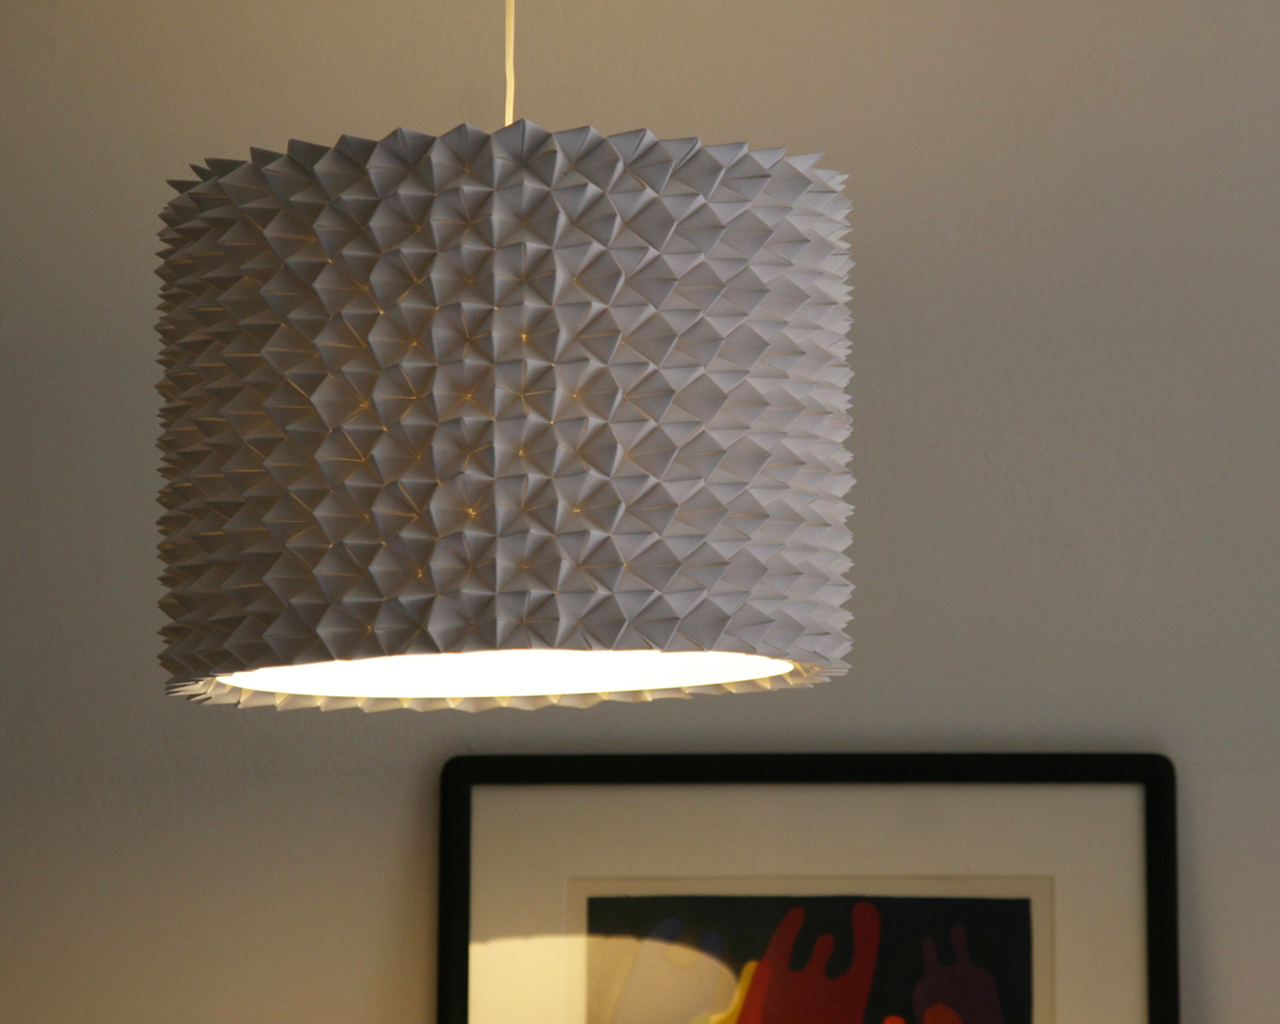 Extra large lamp shades homesfeed textured lampshade idea for a pendant lamp in grey aloadofball Gallery